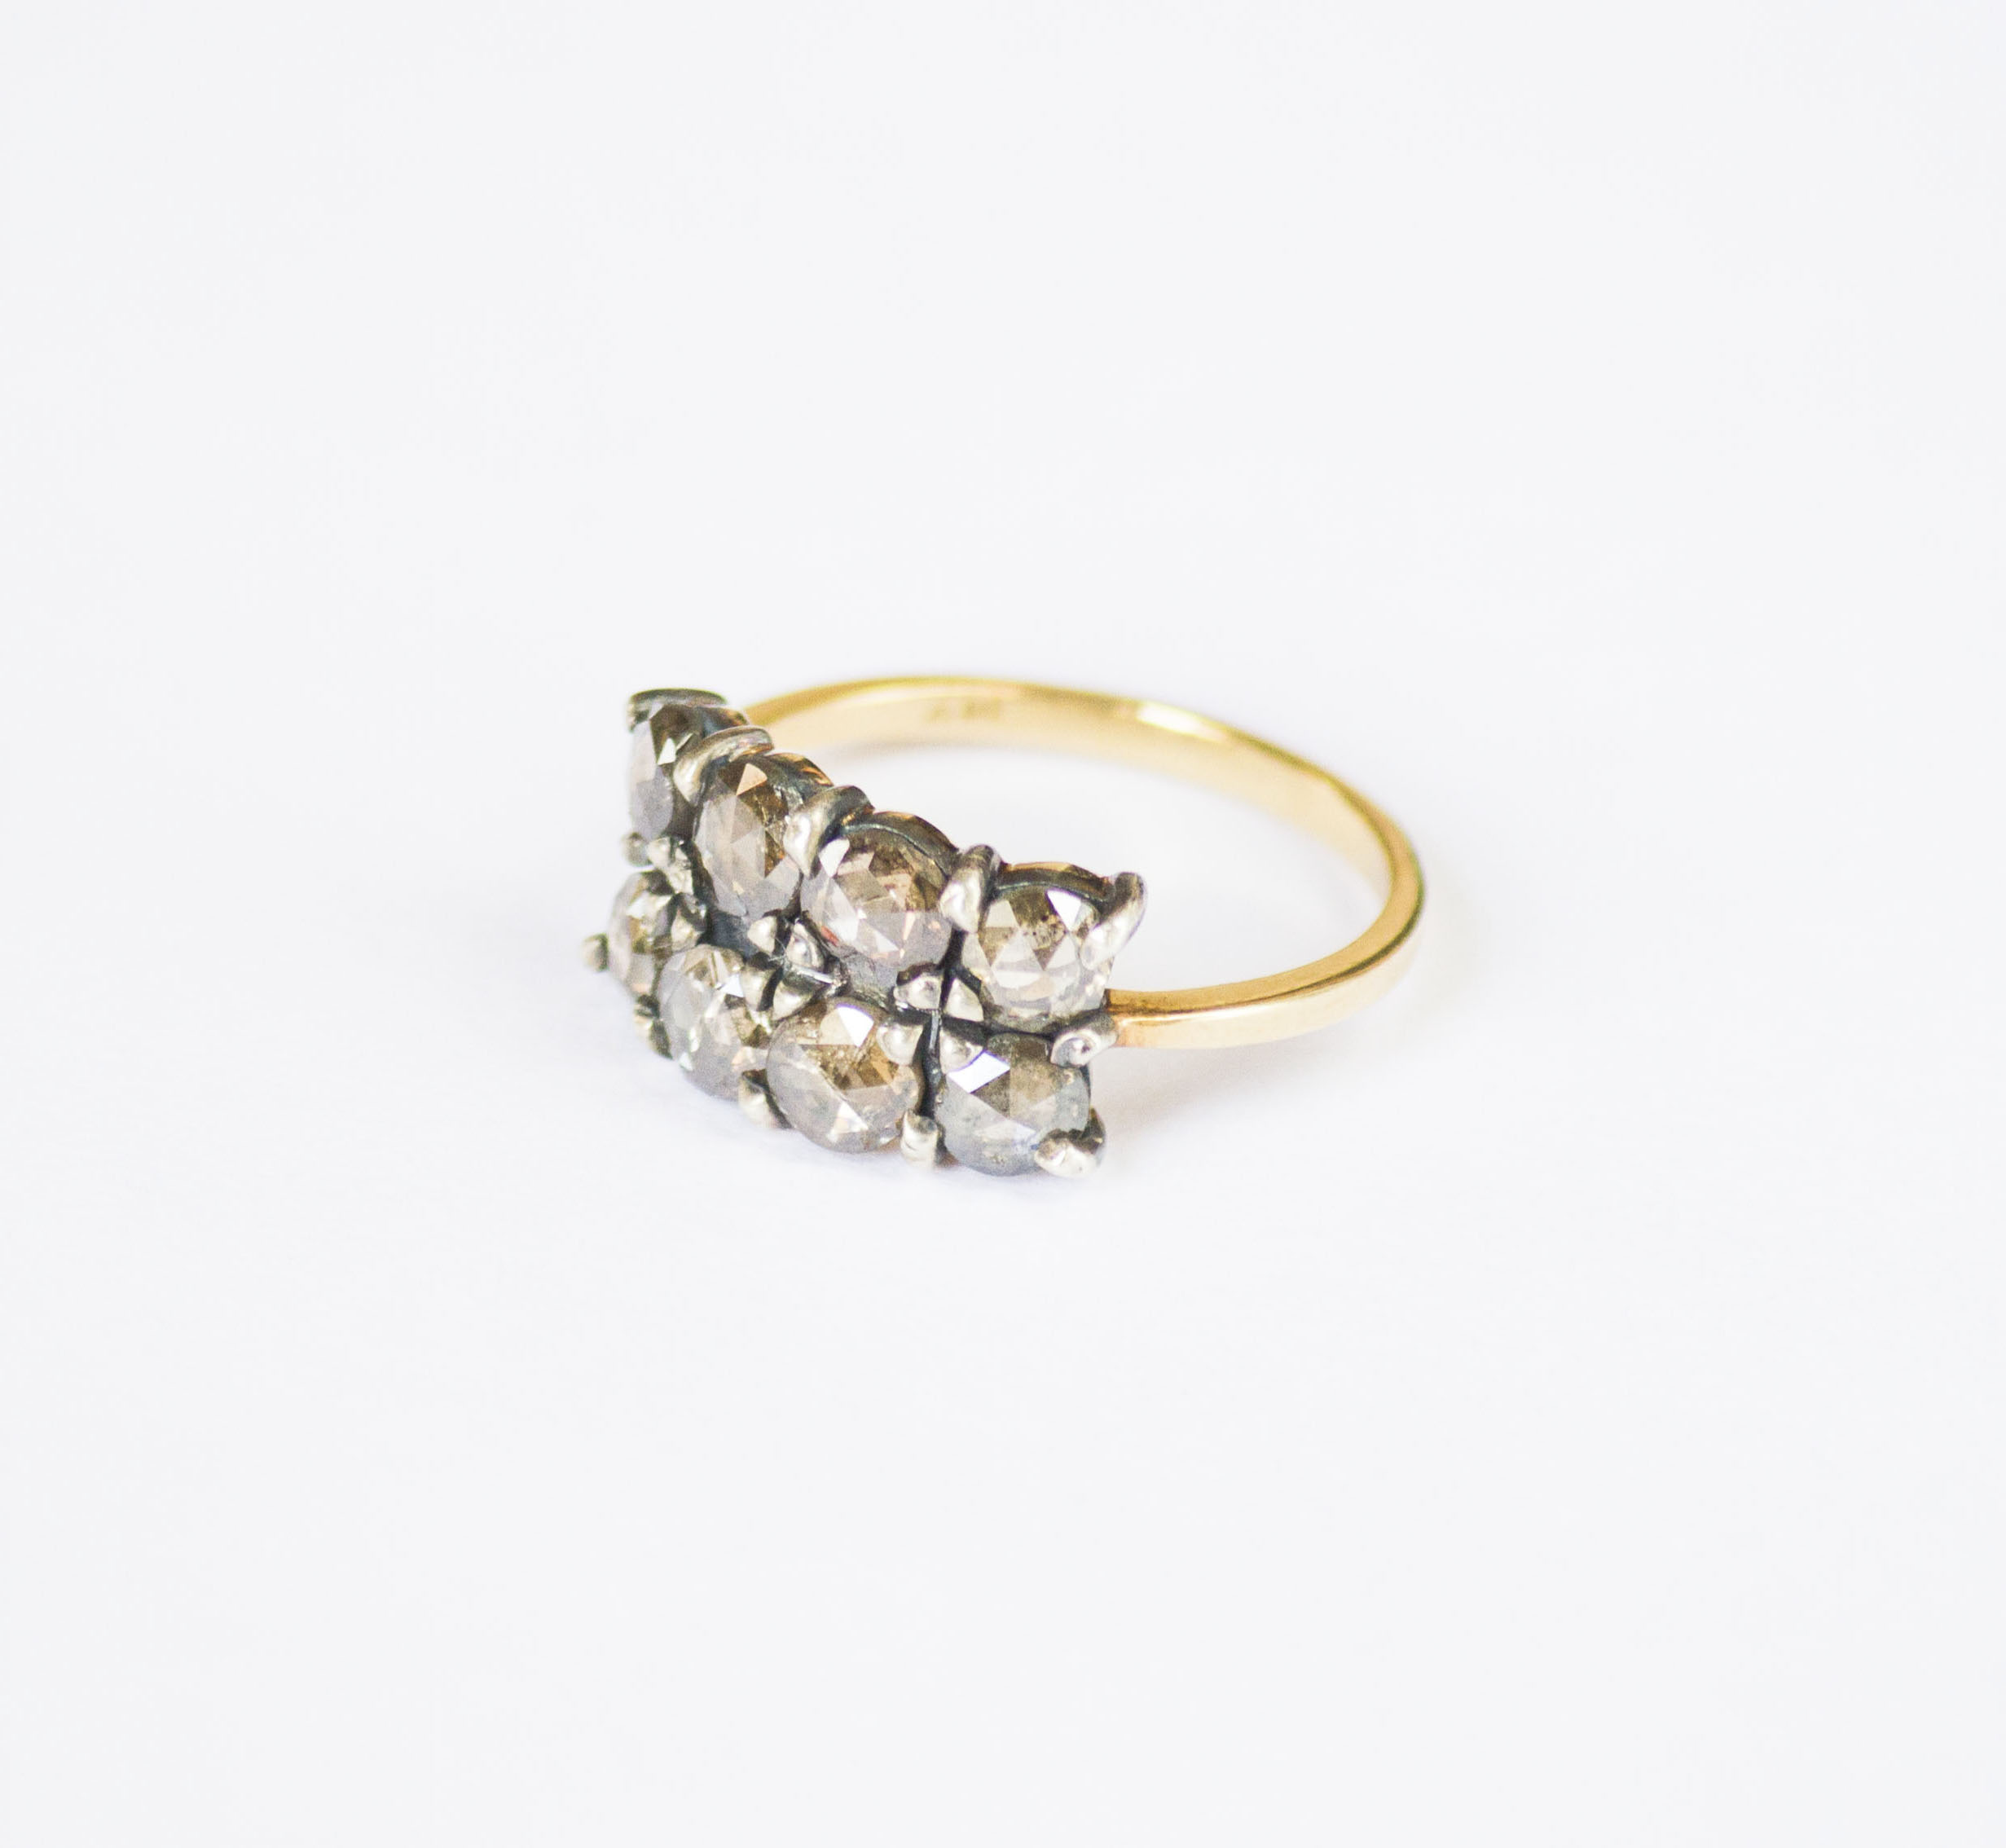 erica rose lyst rings in white cluster diamond cut gallery jewelry georgian weiner product ring normal